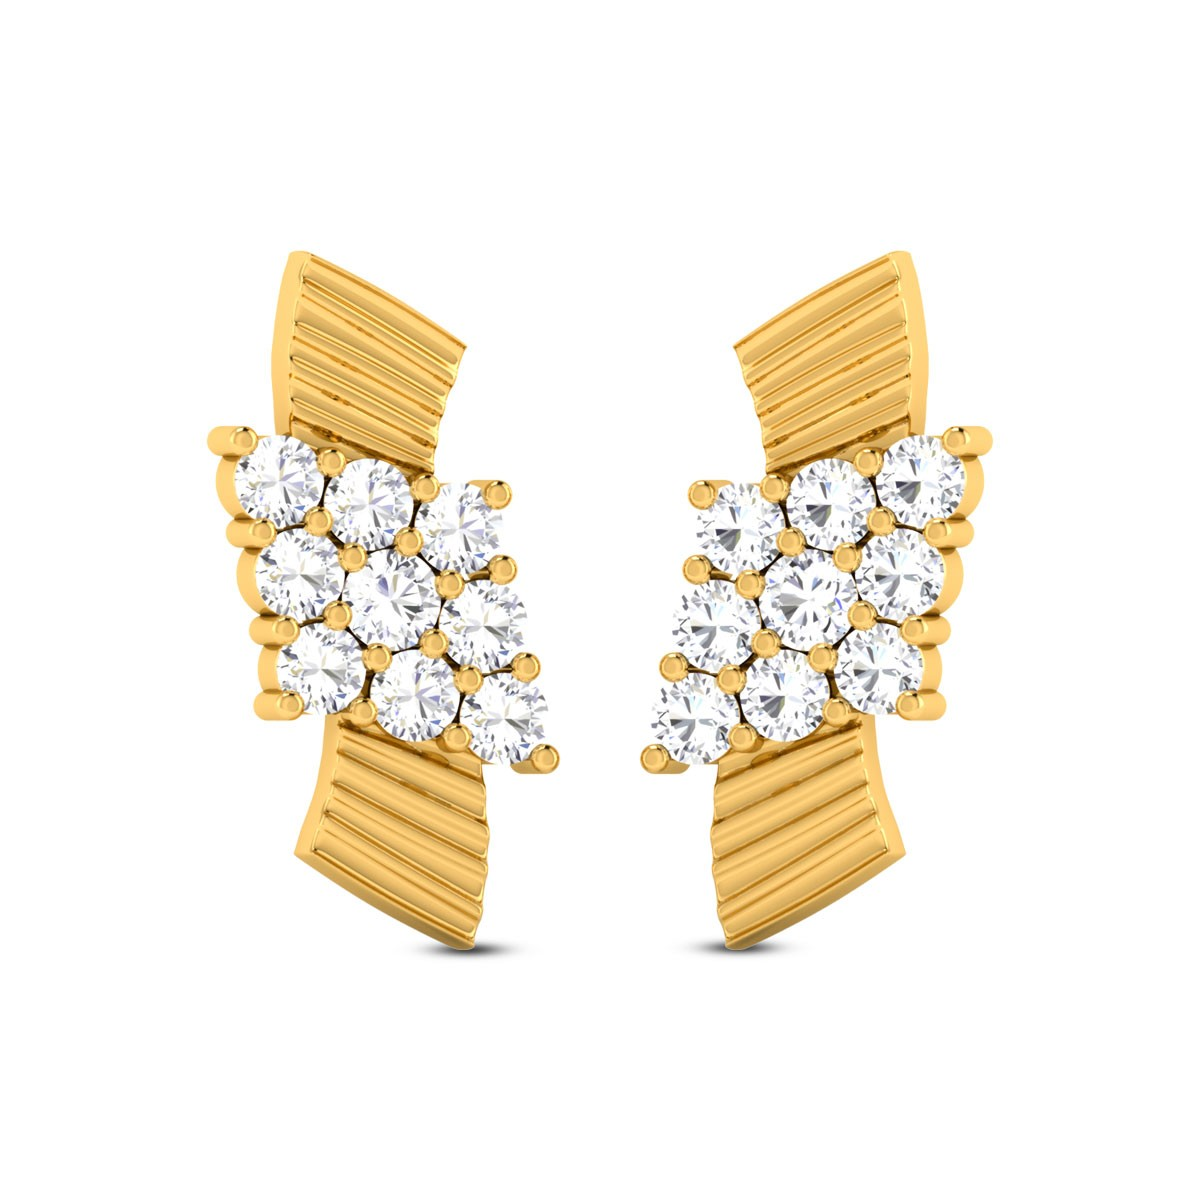 Buy Opal Contemporary 3.11 Gms Gold Stud Earrings Online